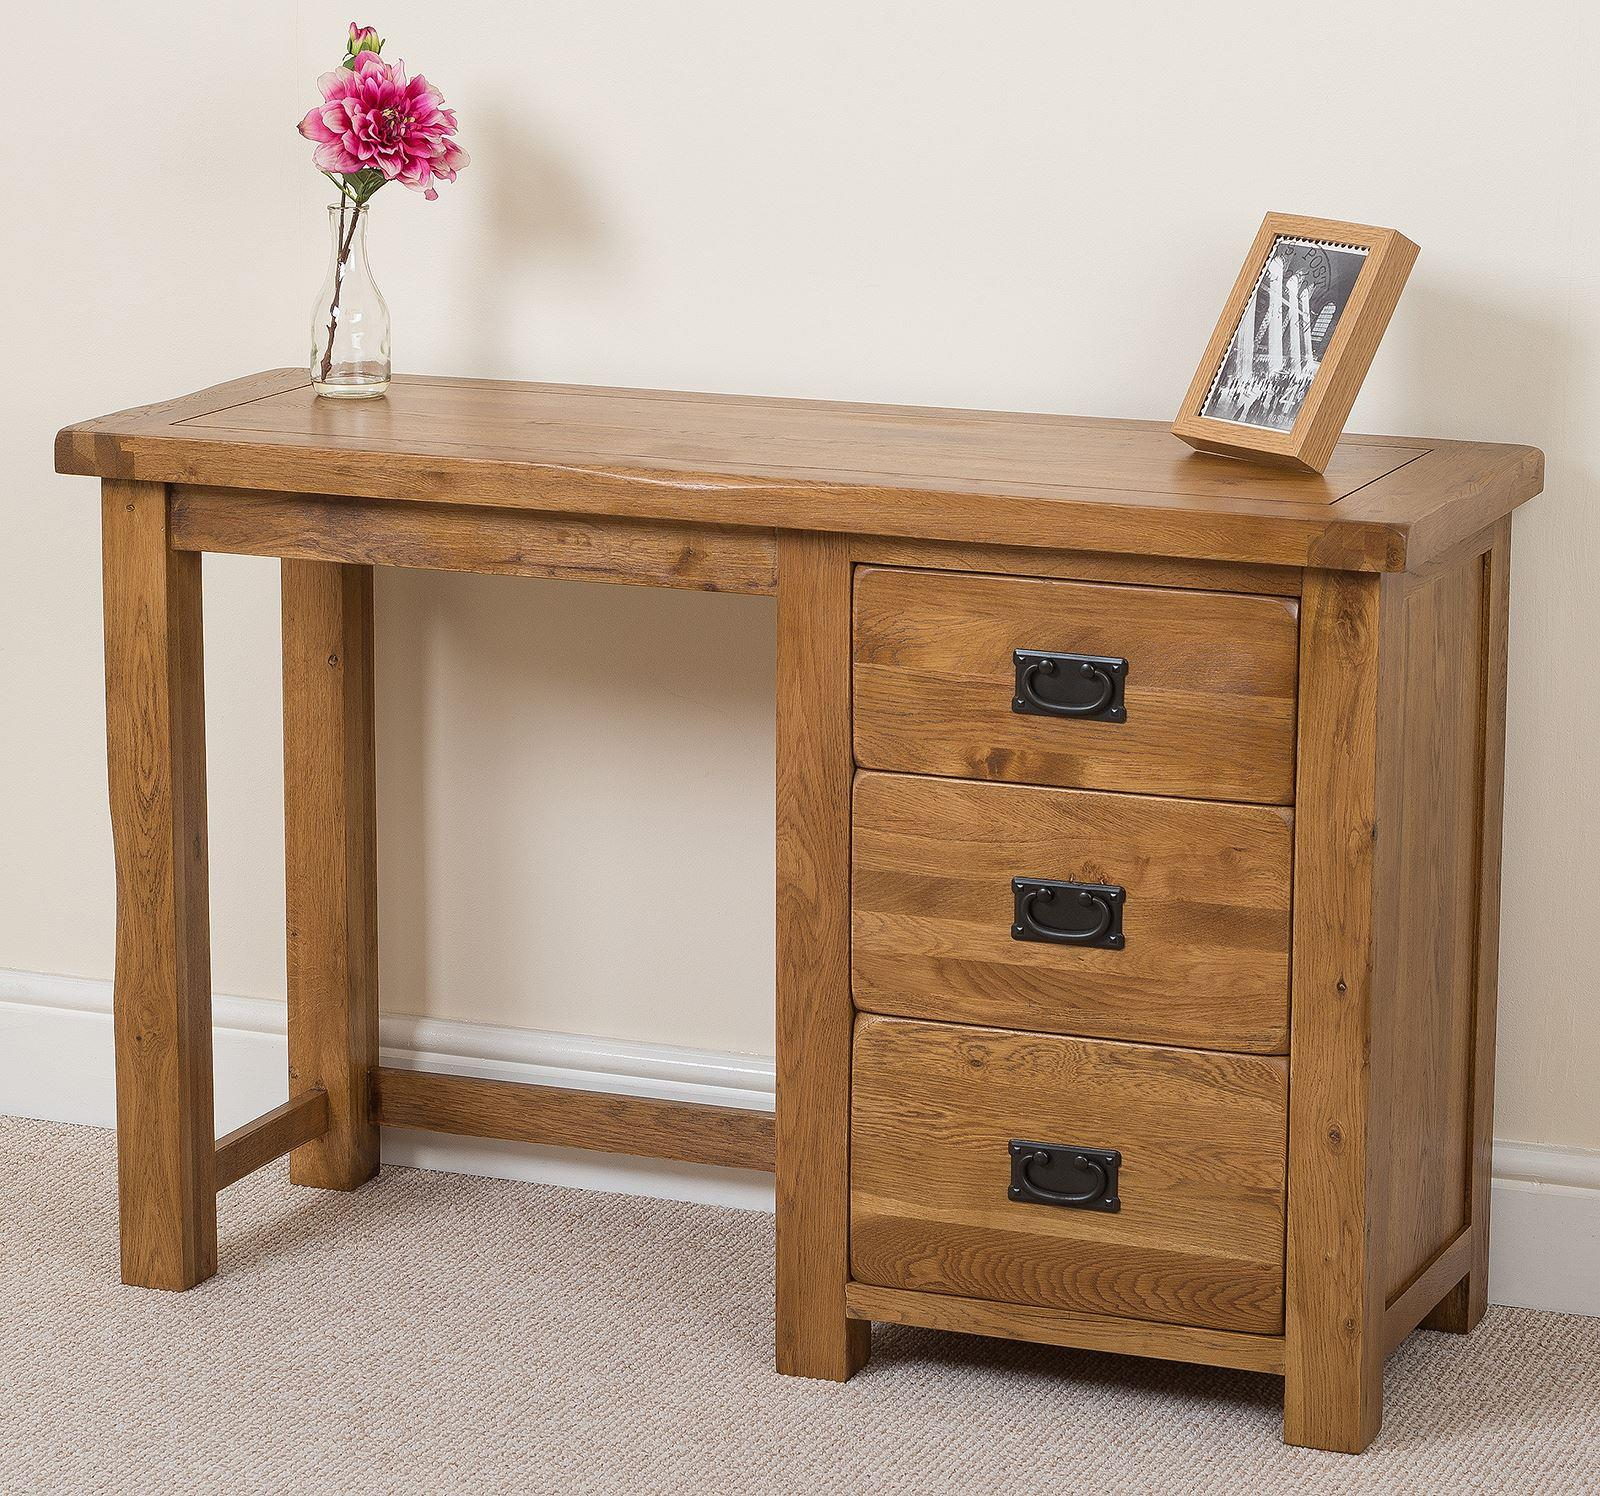 Buy cheap iron dressing table compare products prices for Cheap dressing table